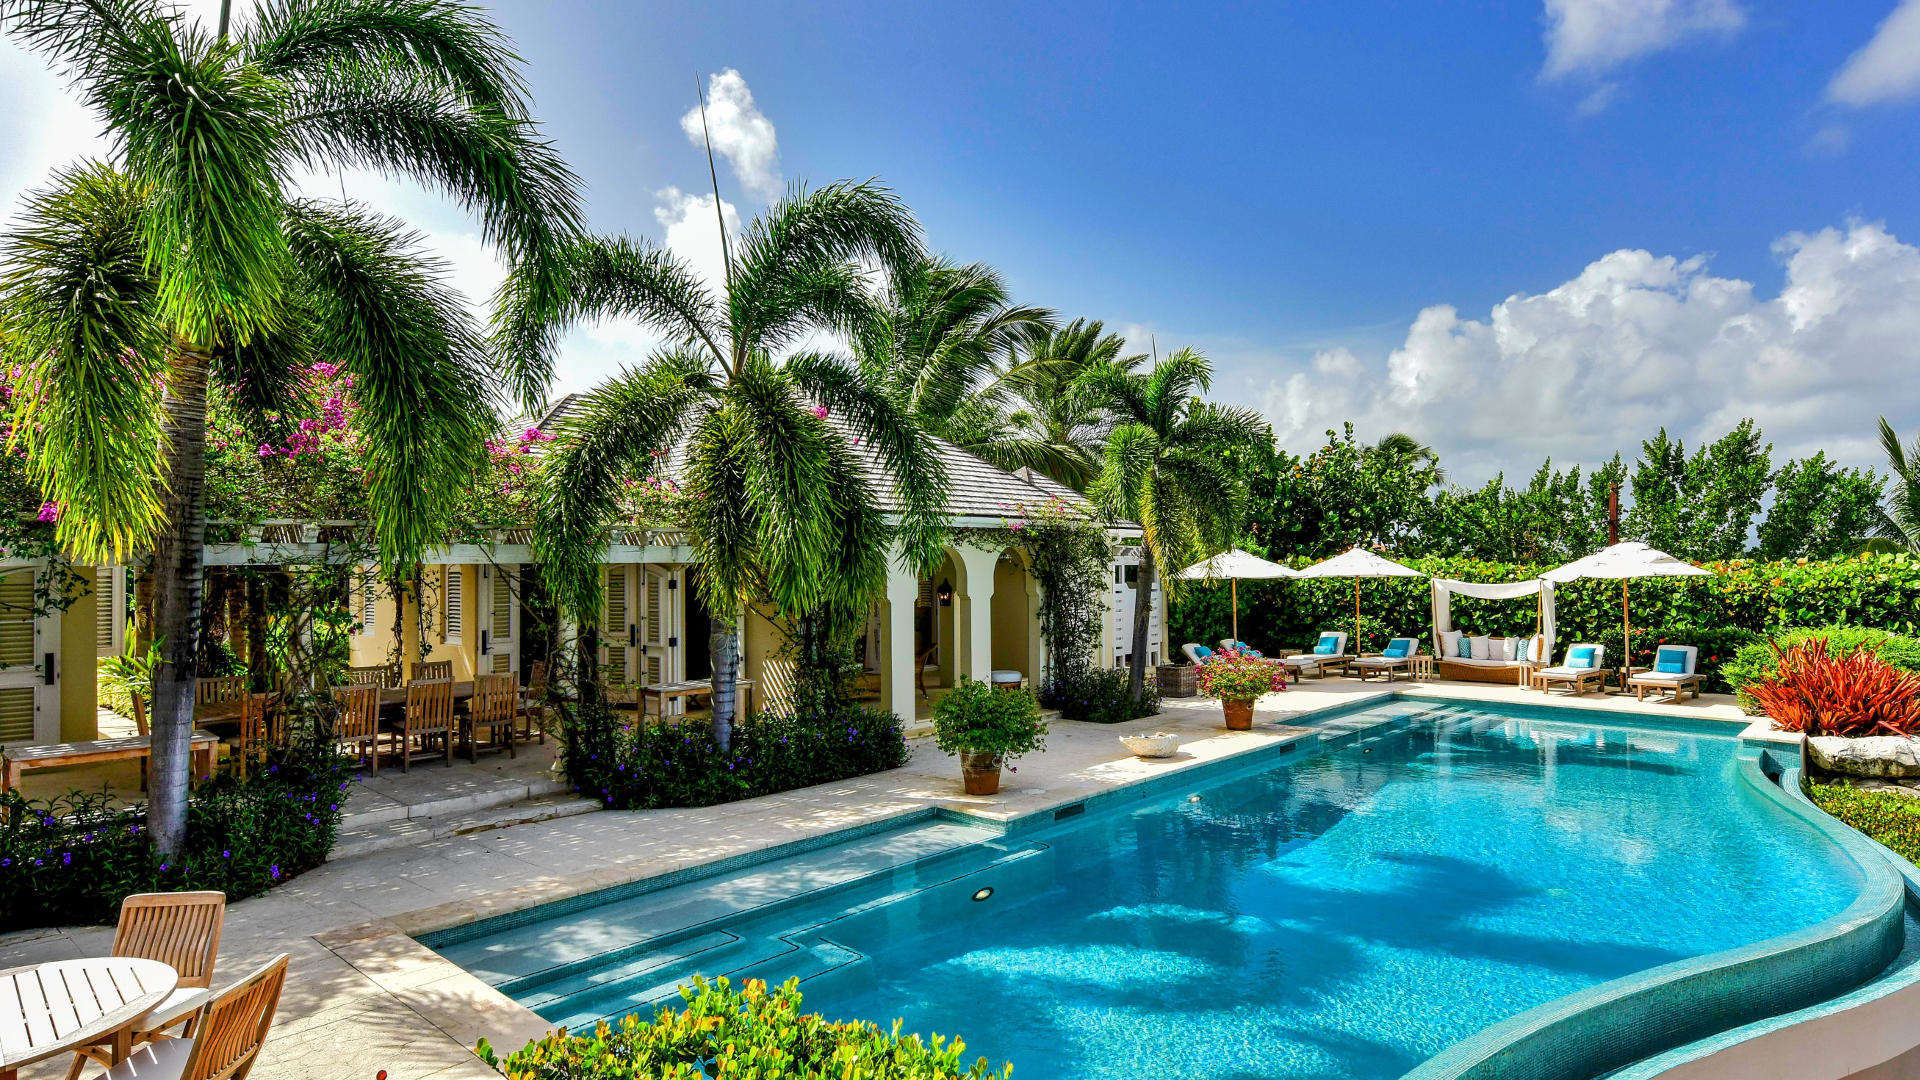 Luxury villa rentals caribbean - Antigua - Jumby bay island - No location 4 - Sunset Cove - Image 1/10